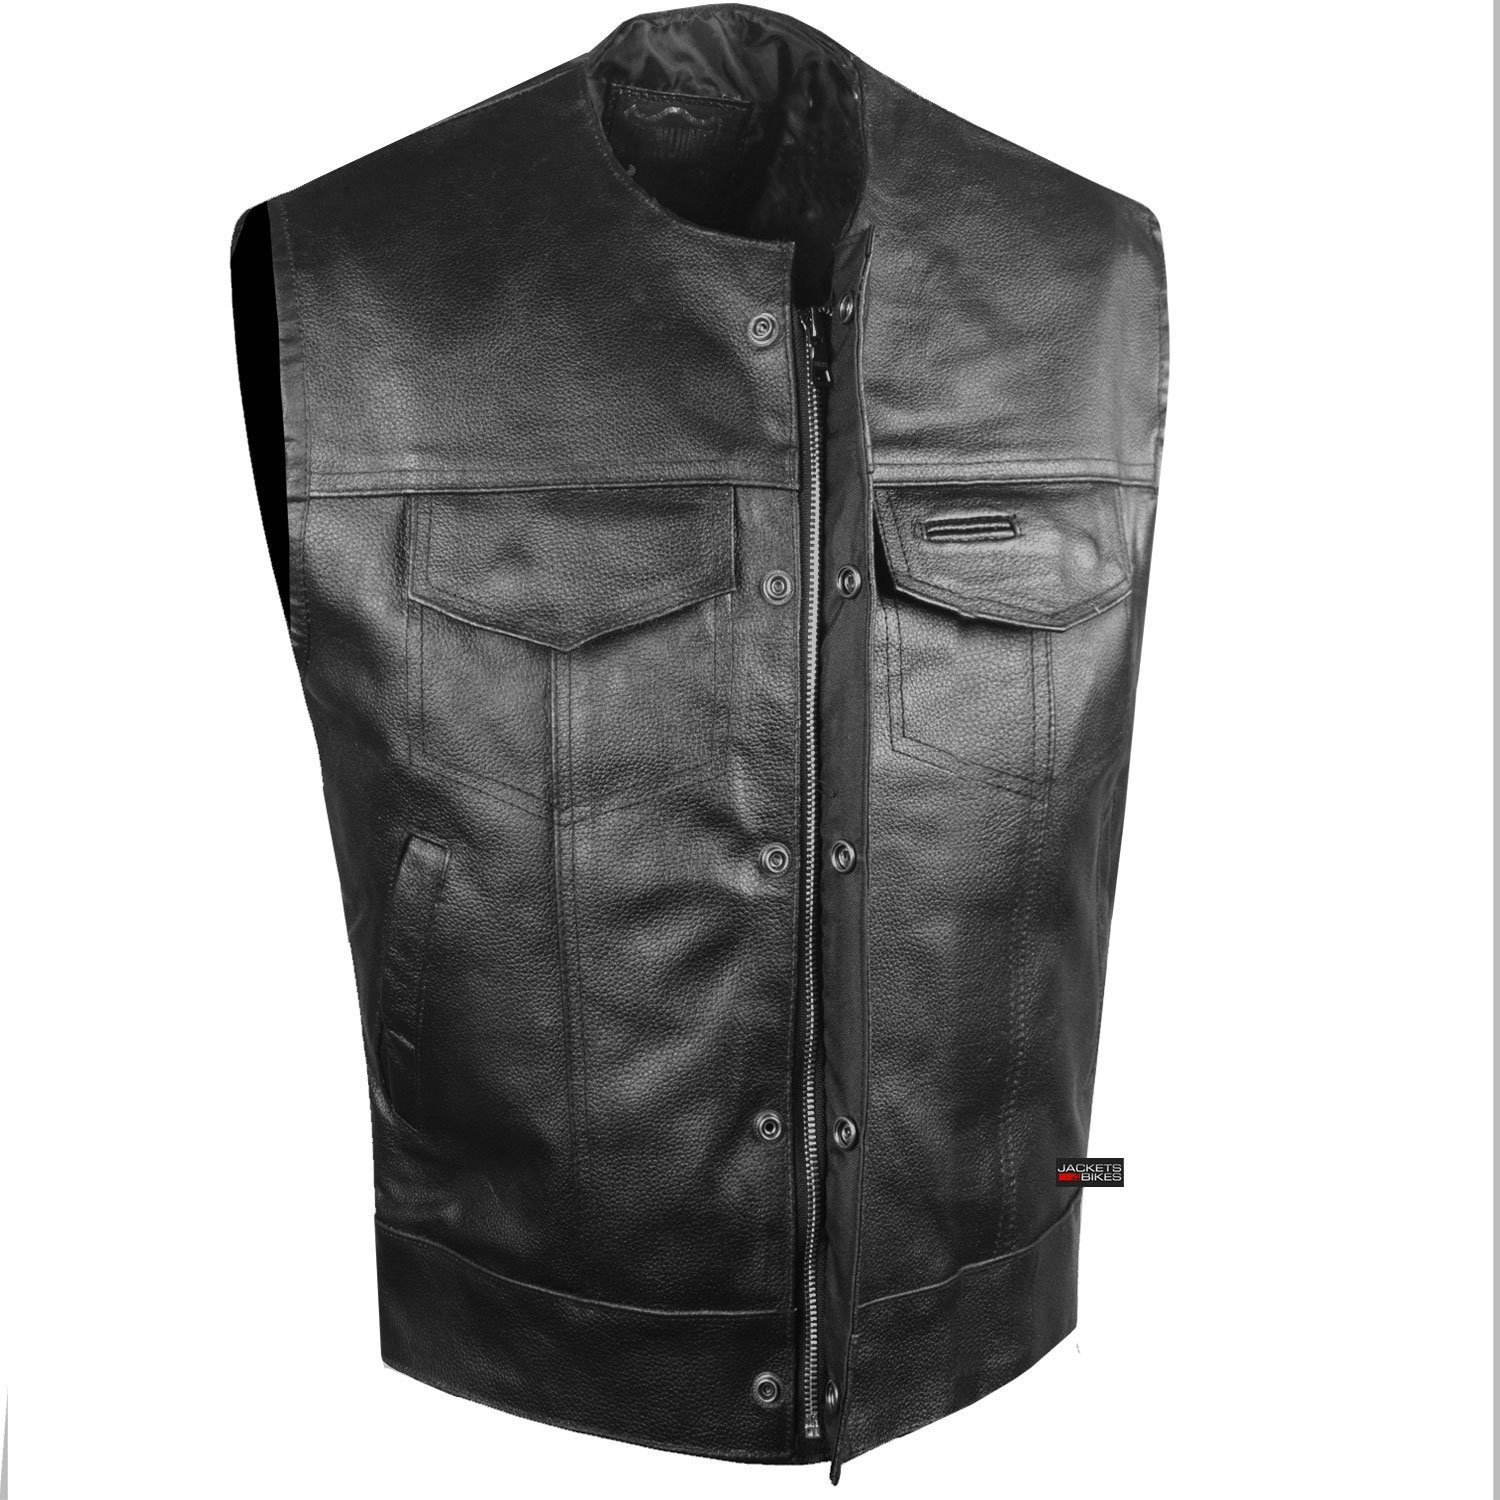 SOA Collarless Leather Vest Anarchy Motorcycle Biker Concealed Carry Black XXL